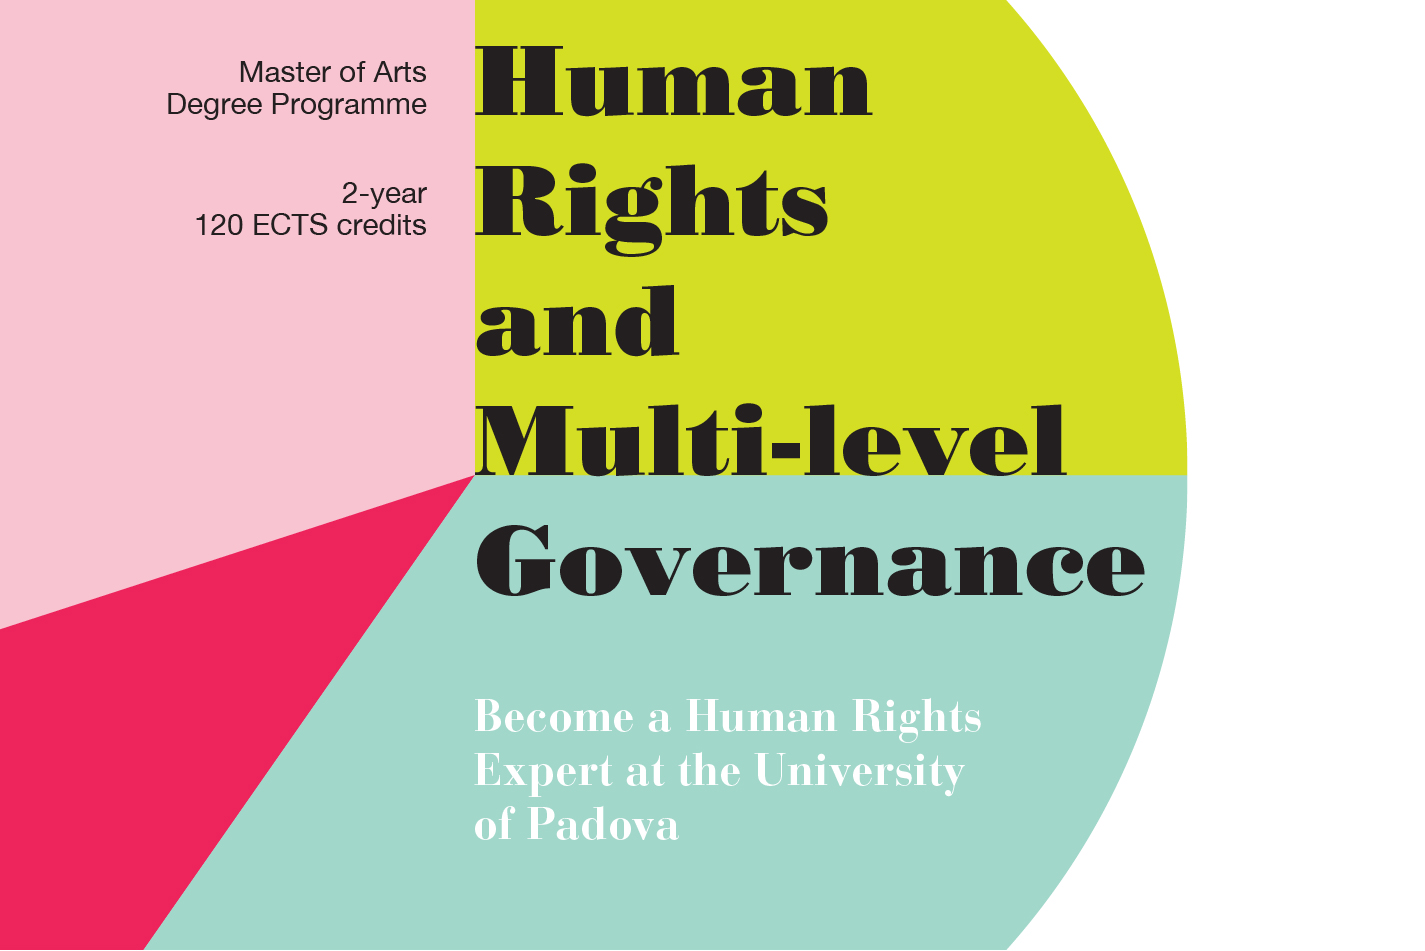 MA Degree Programme Human Rights and Multi-level Governance